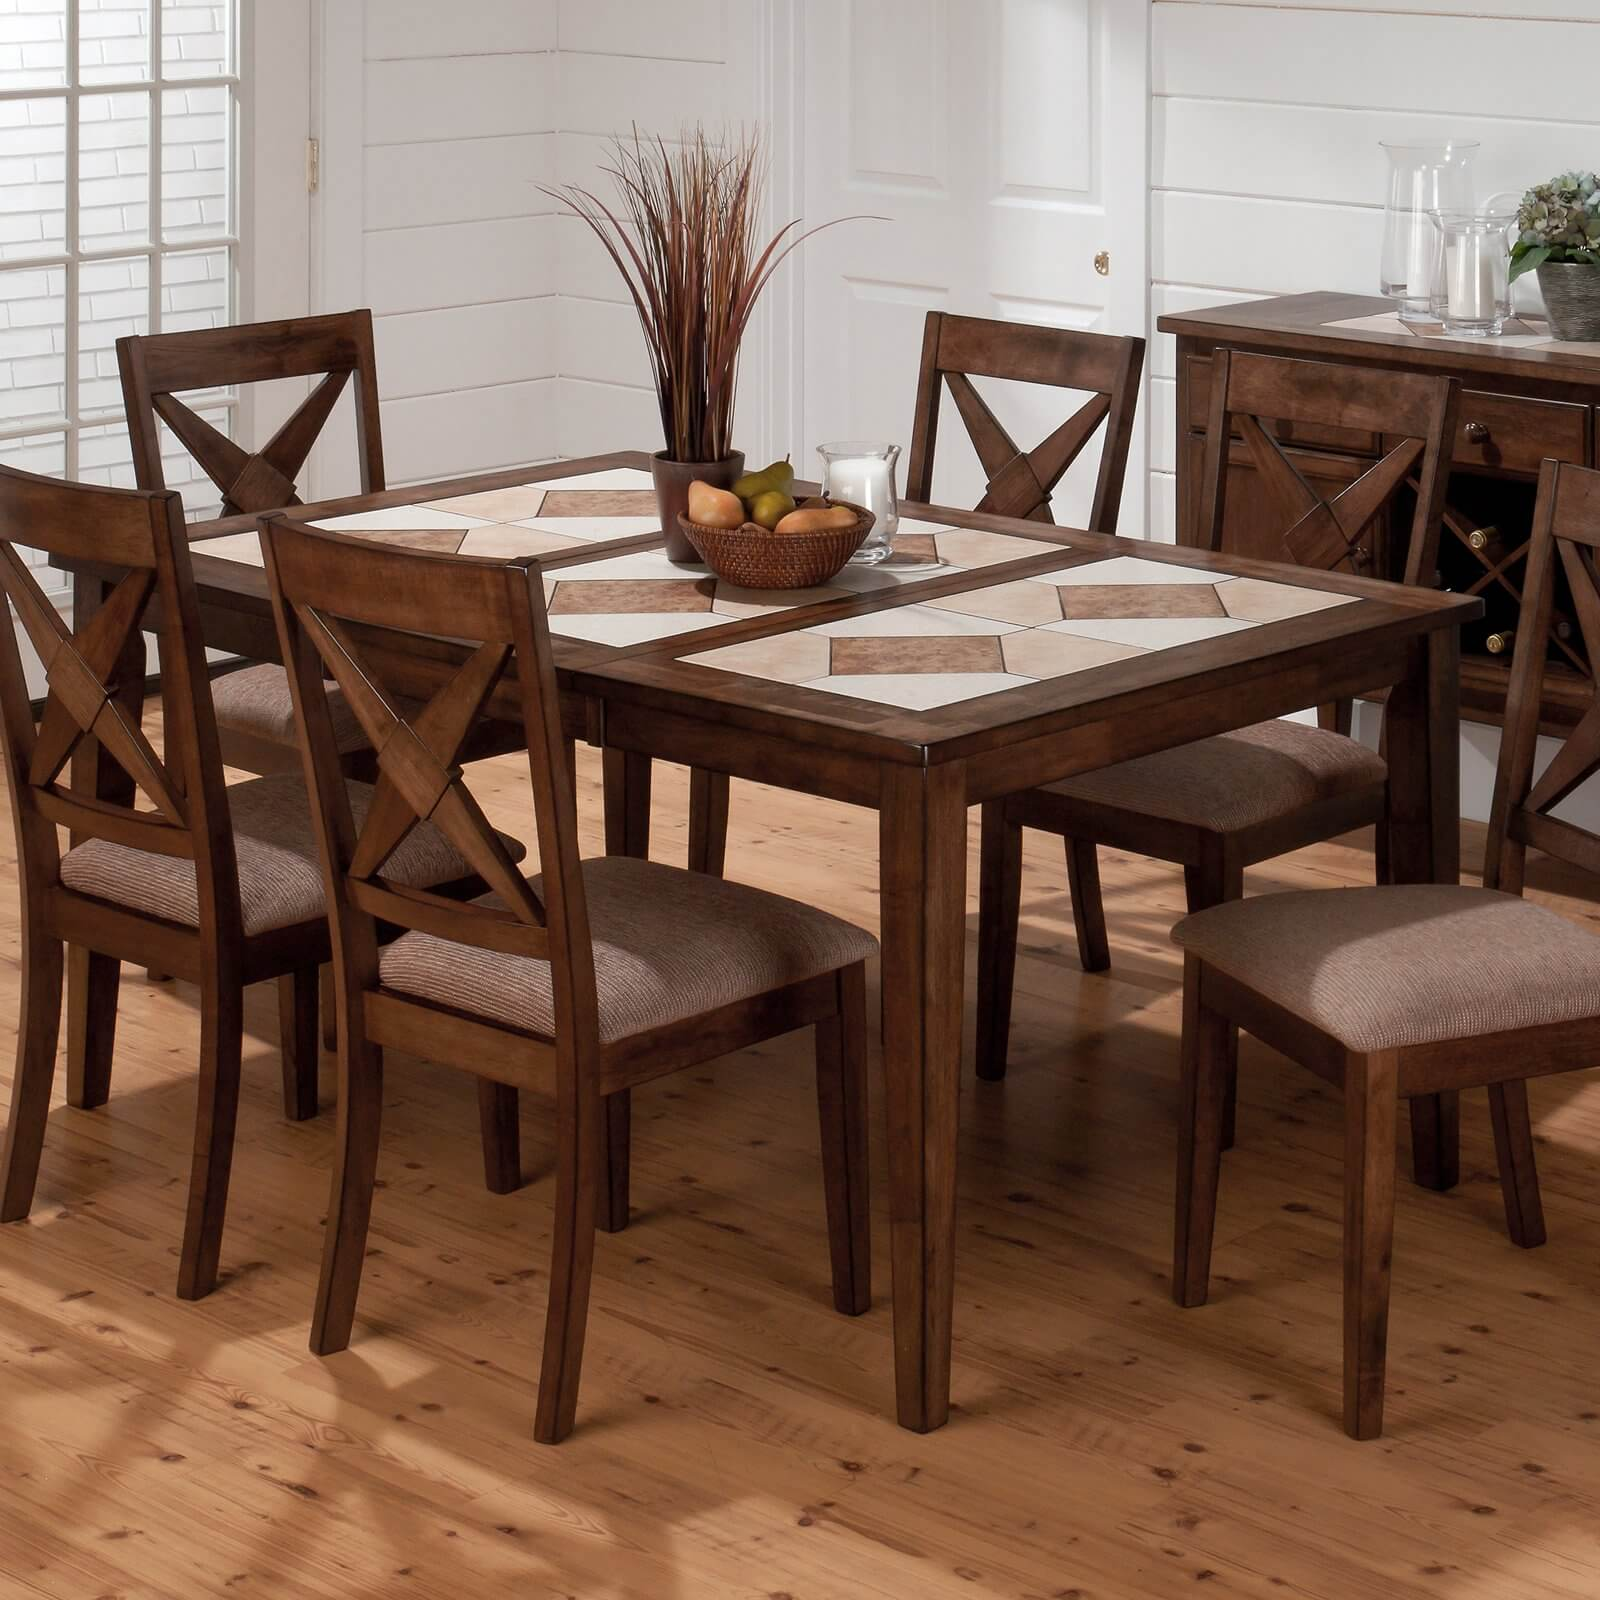 Dining Room Kitchen Tables: 38 Types Of Dining Room Tables (Extensive Buying Guide